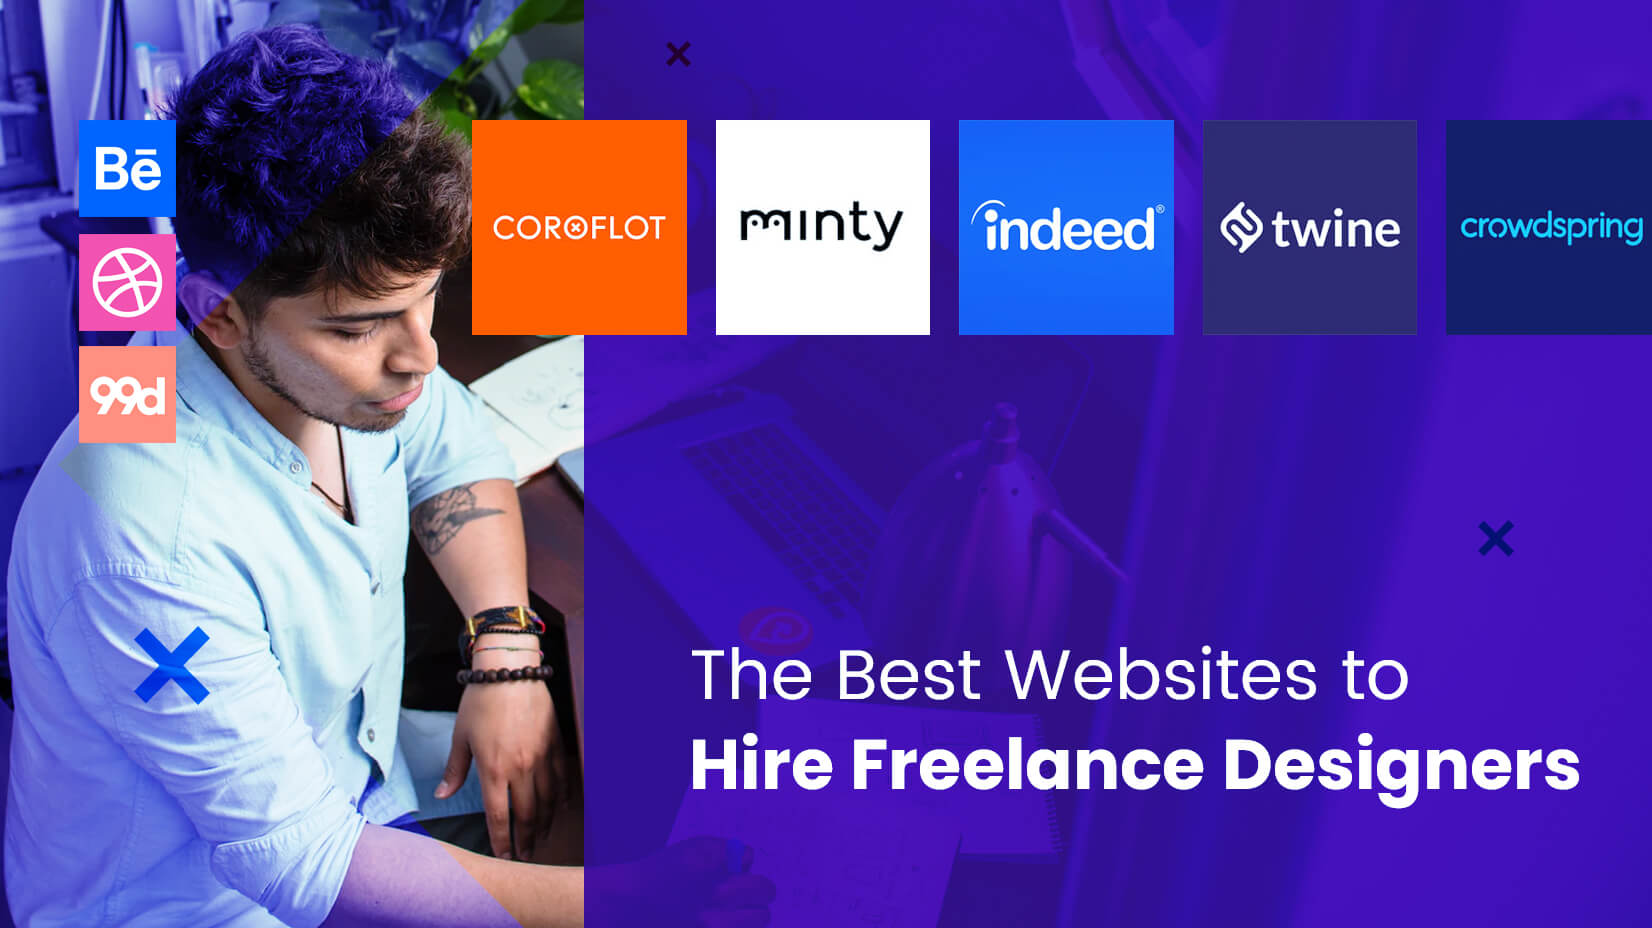 The Best Websites to Hire Freelance Designers